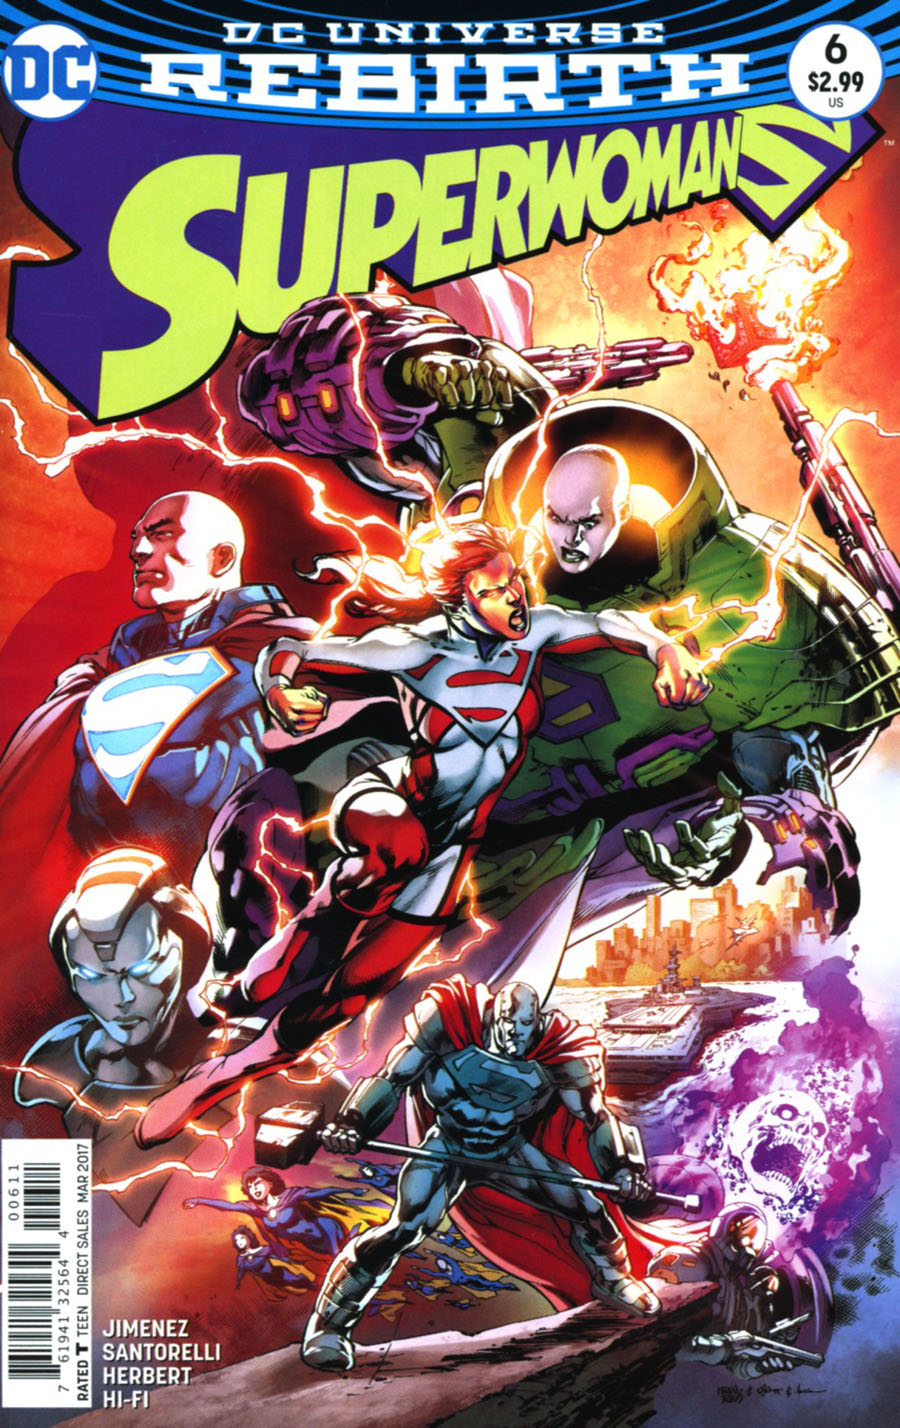 Superwoman #6